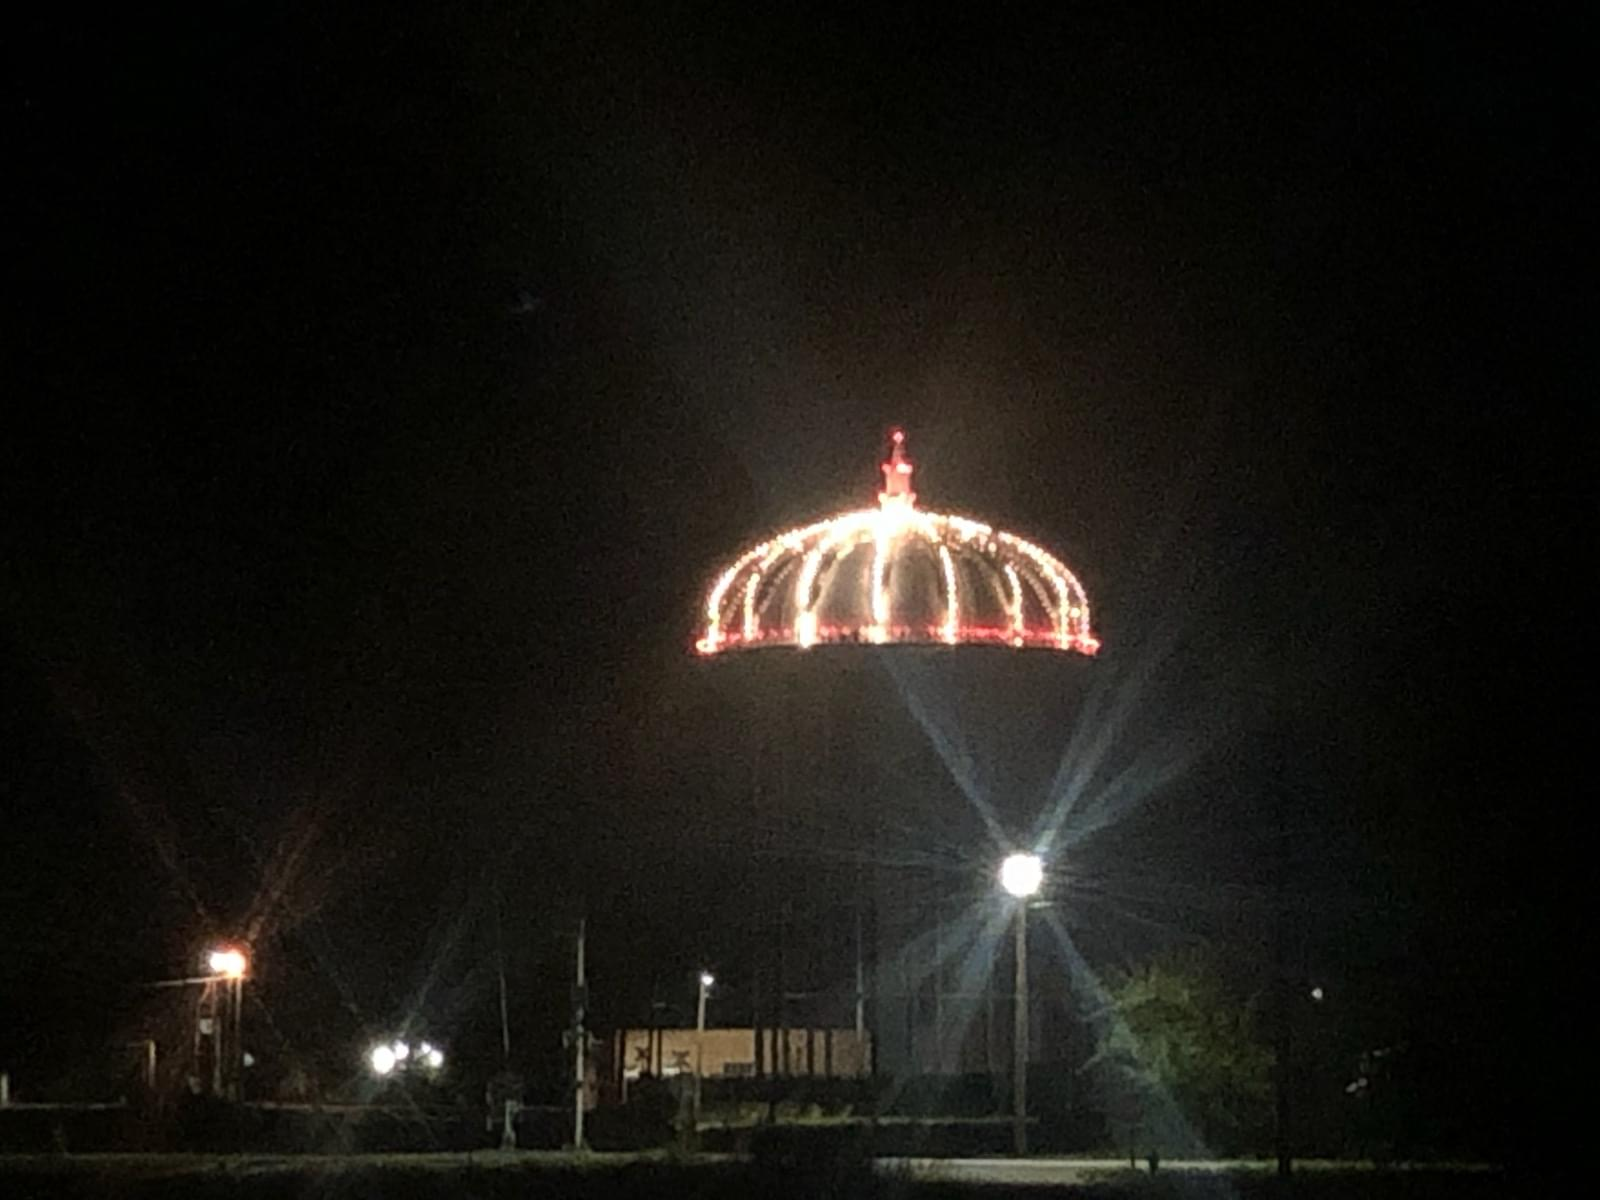 Goldsboro To Light Water Tower During COVID-19 Emergency